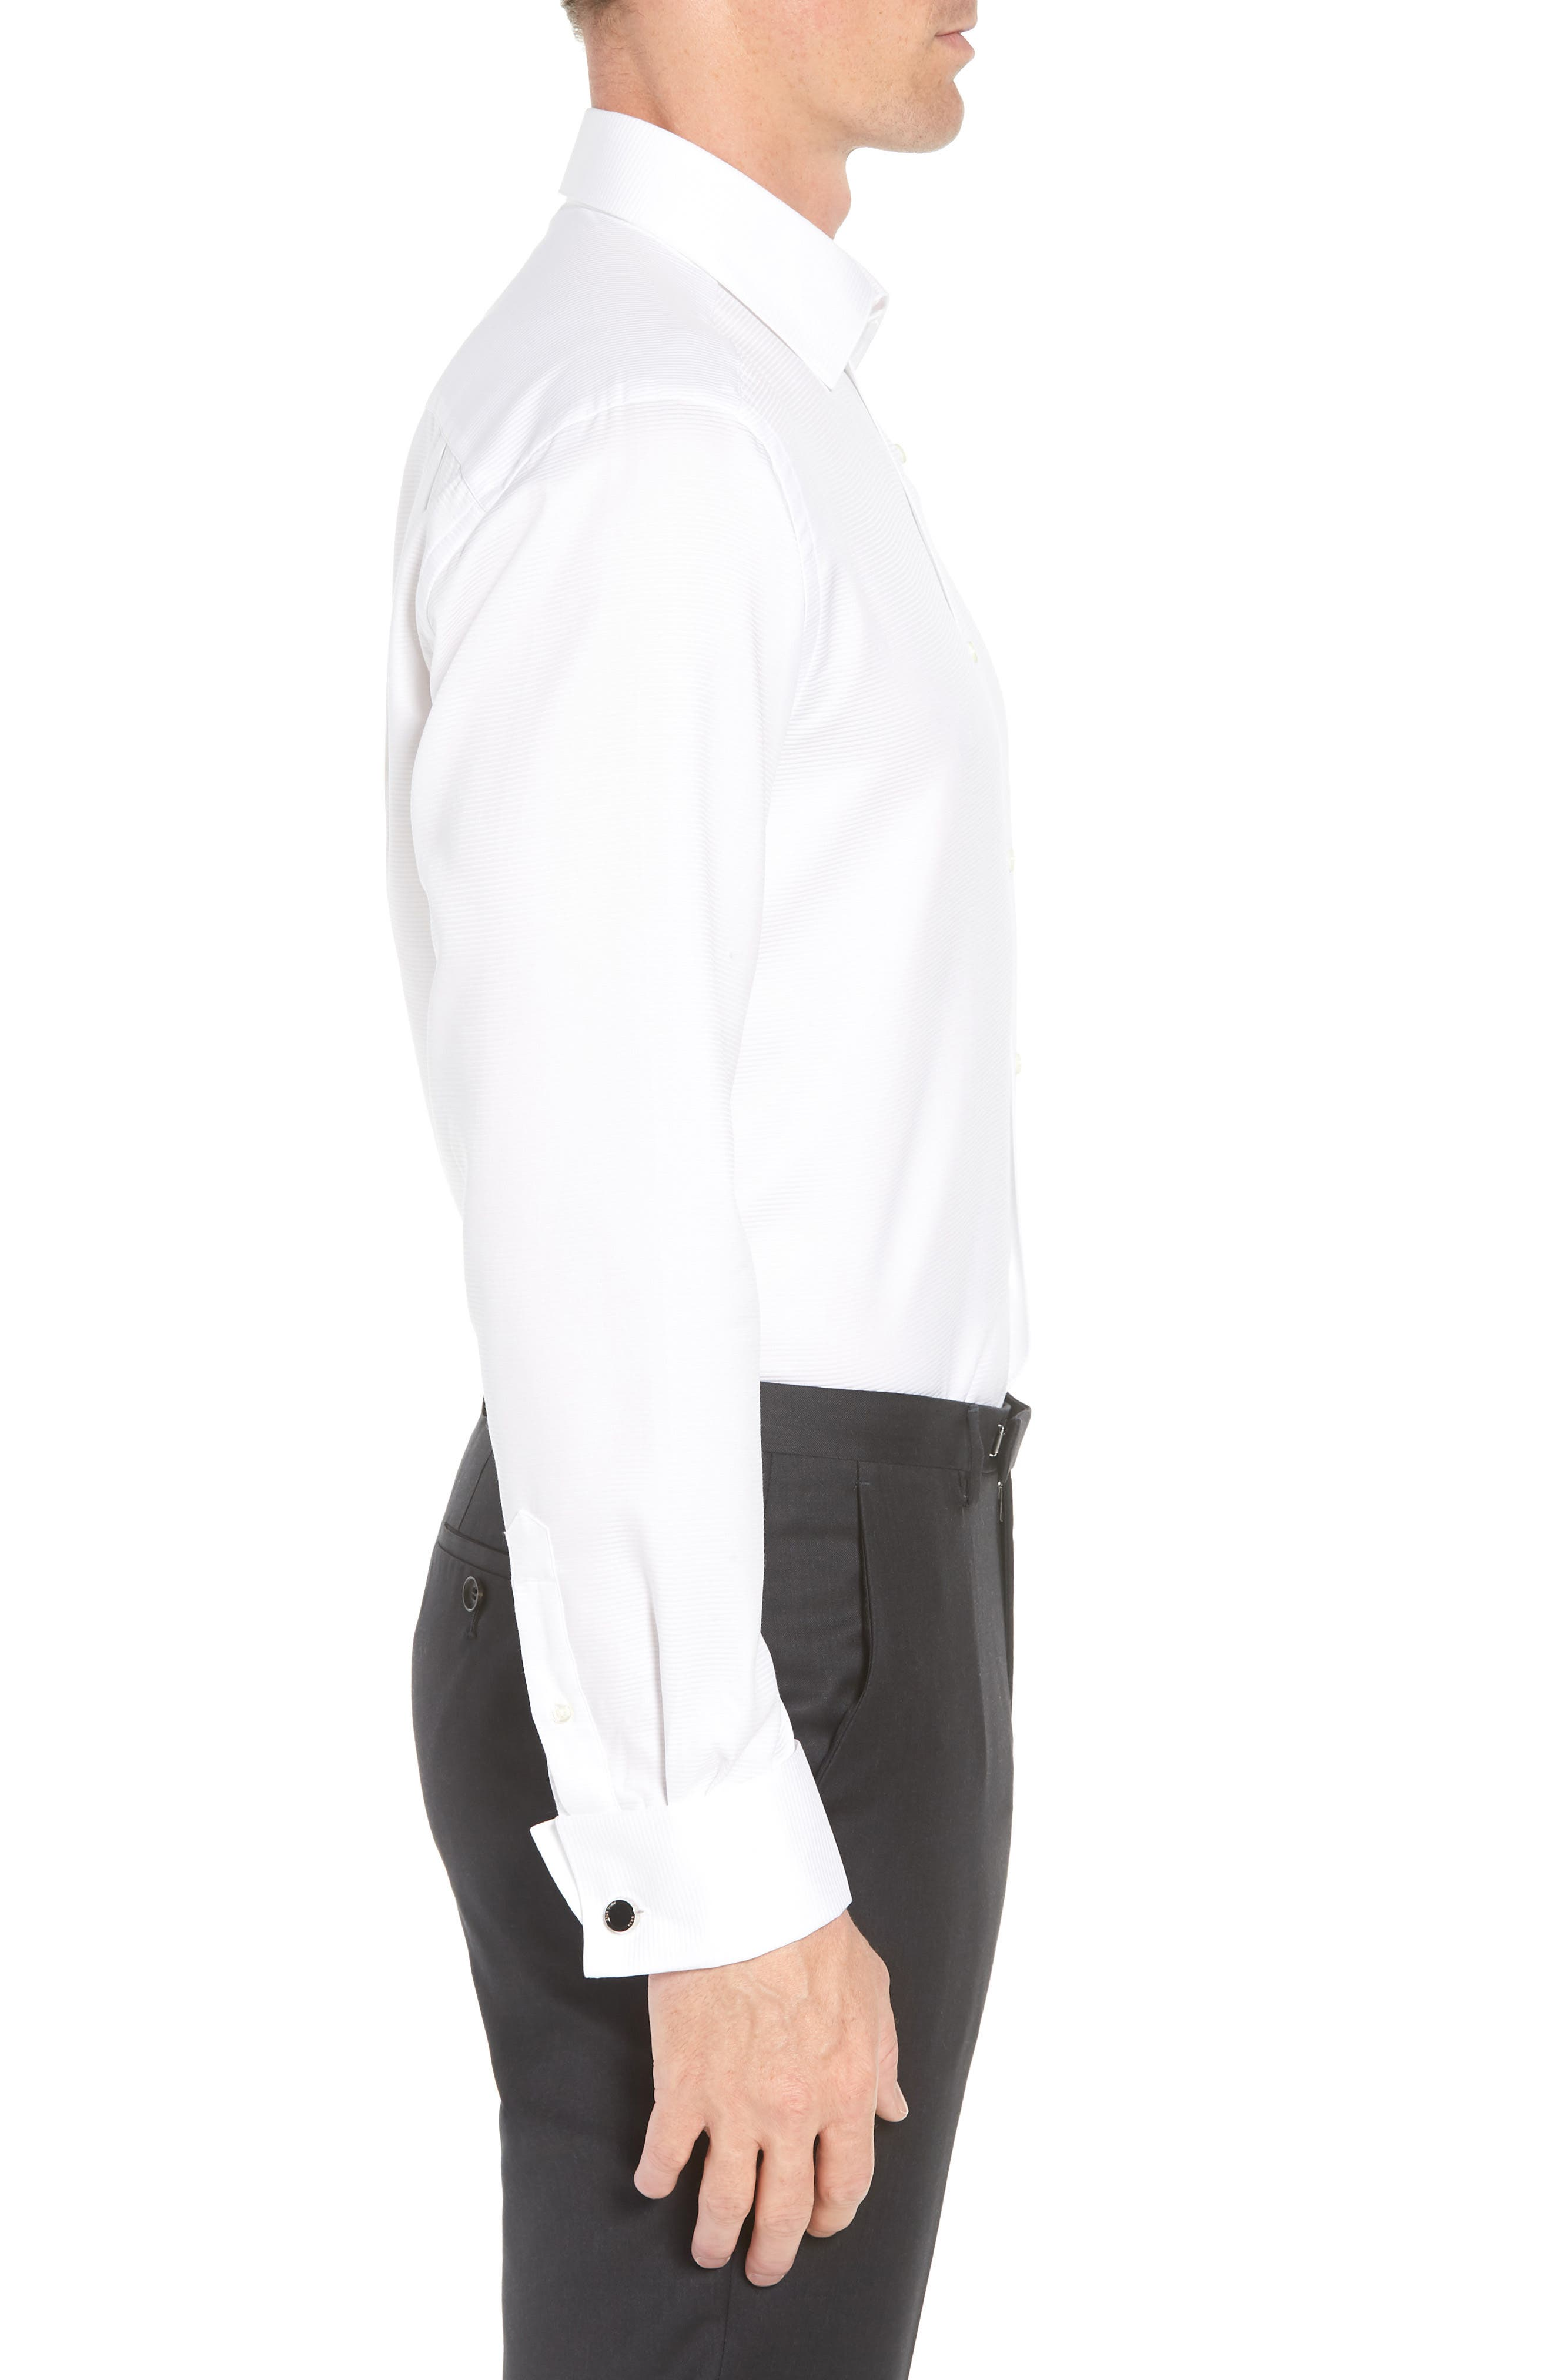 DAVID DONAHUE, Horizontal Twill Regular Fit Tuxedo Shirt, Alternate thumbnail 4, color, WHITE